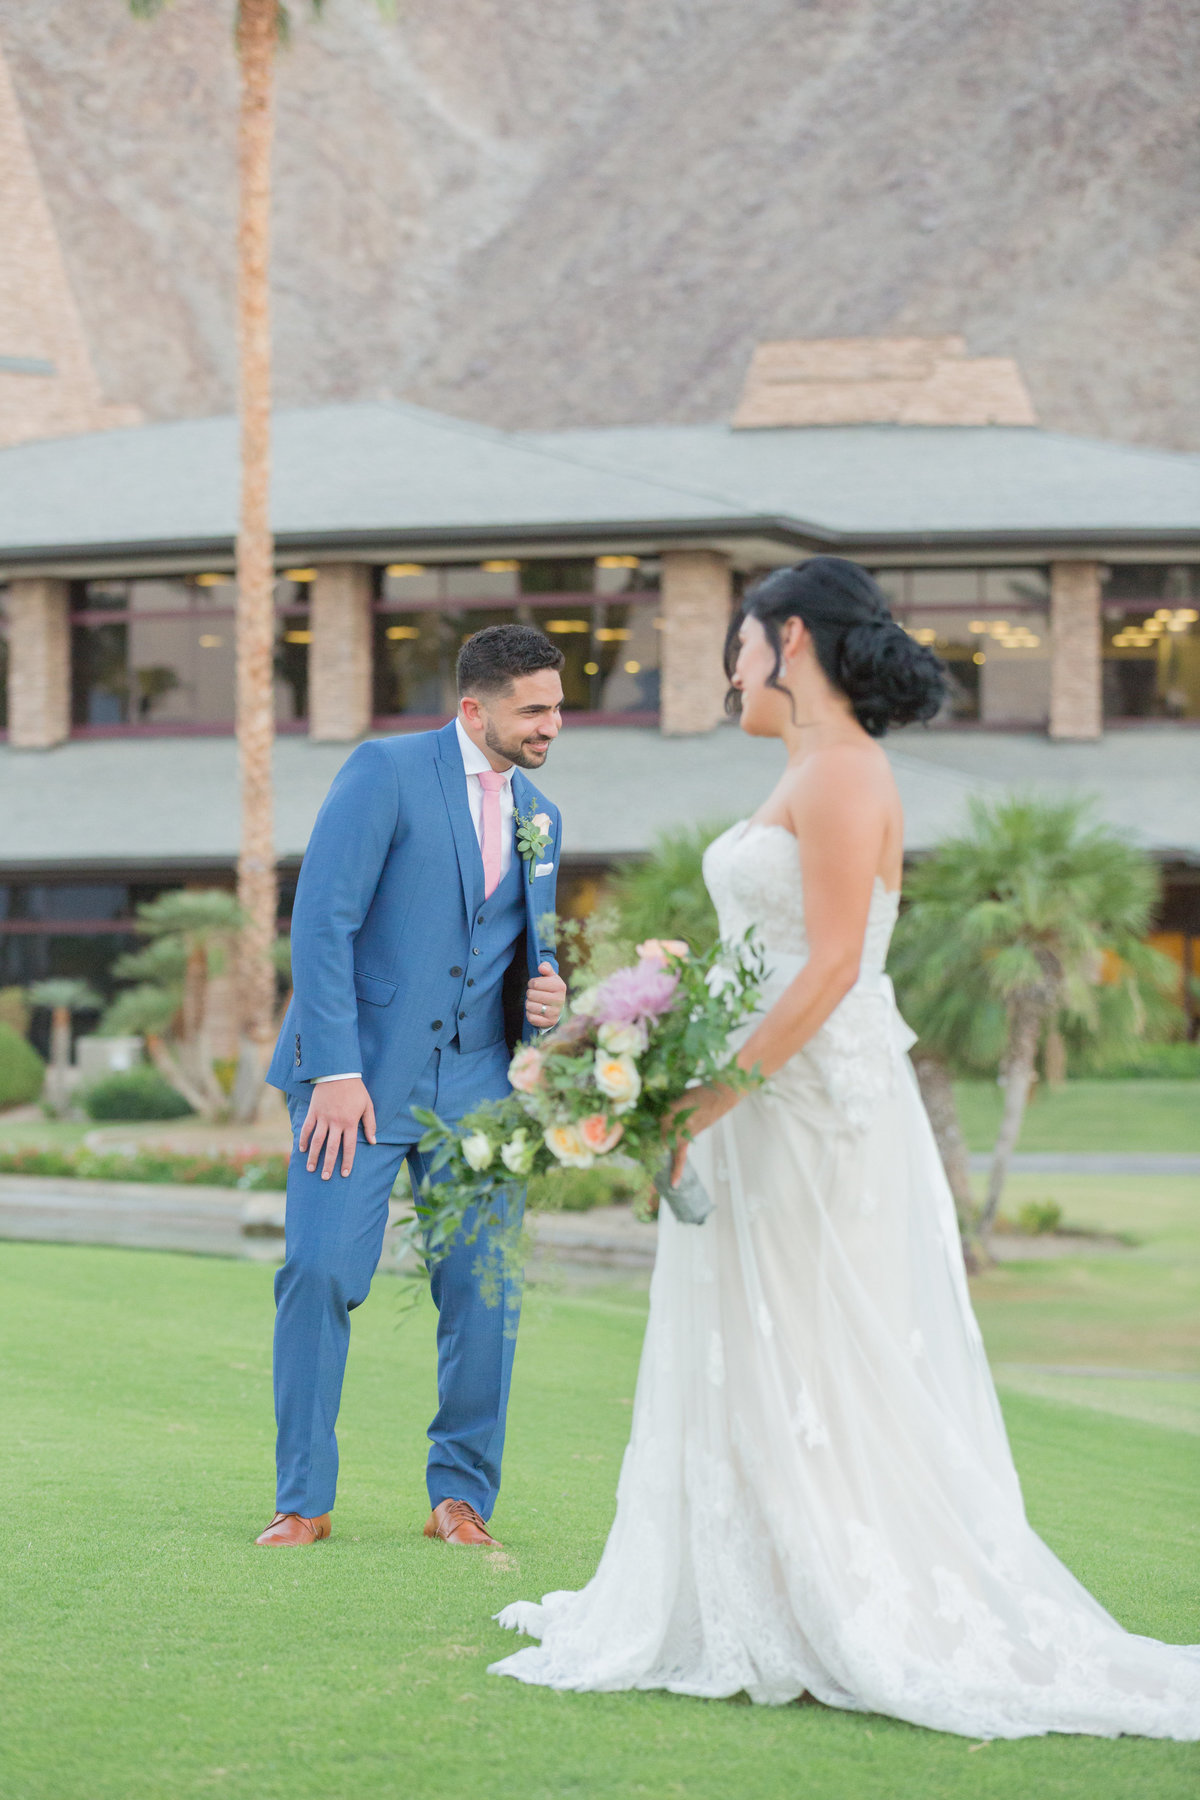 Erica Mendenhall Photography_Indian Wells Wedding_MP_0587web